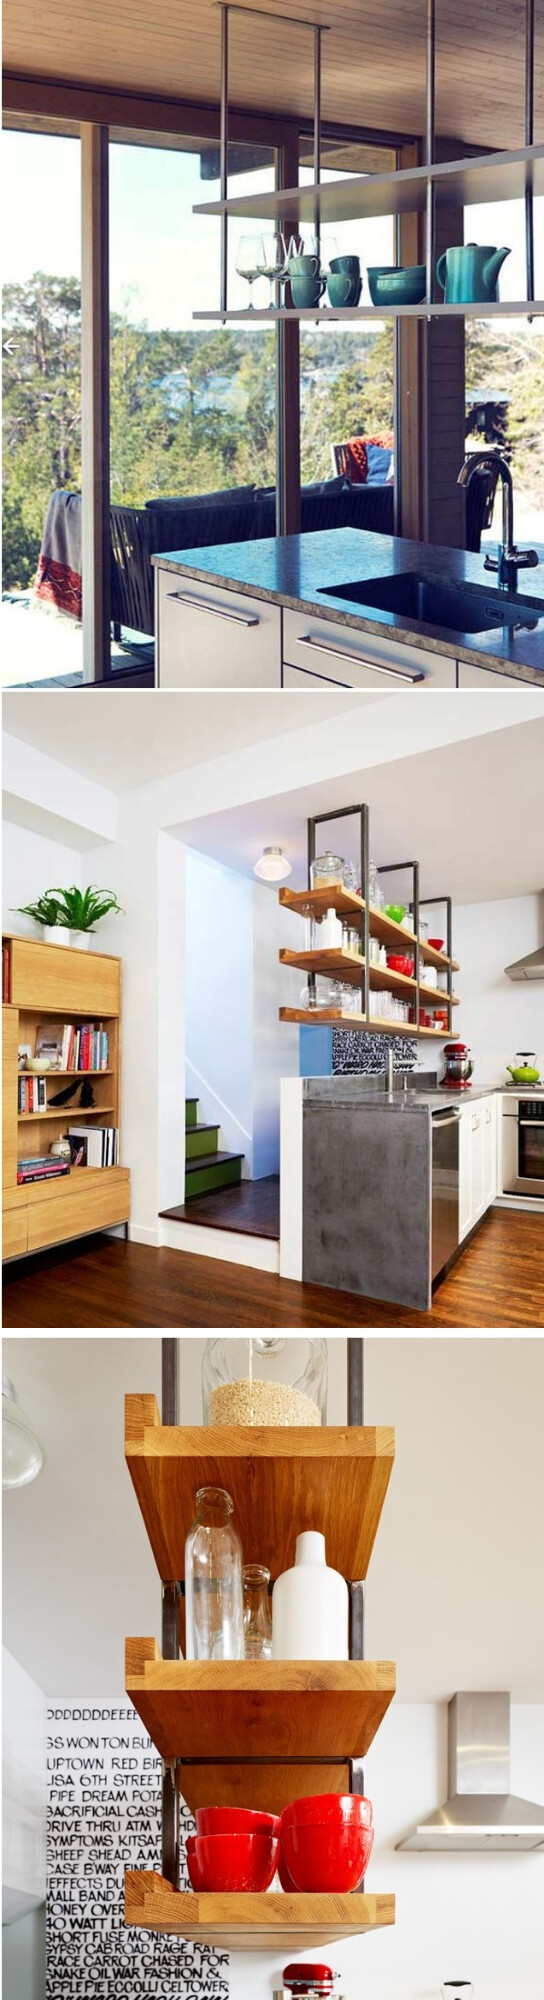 Hanging Shelf Over the Kitchen Island